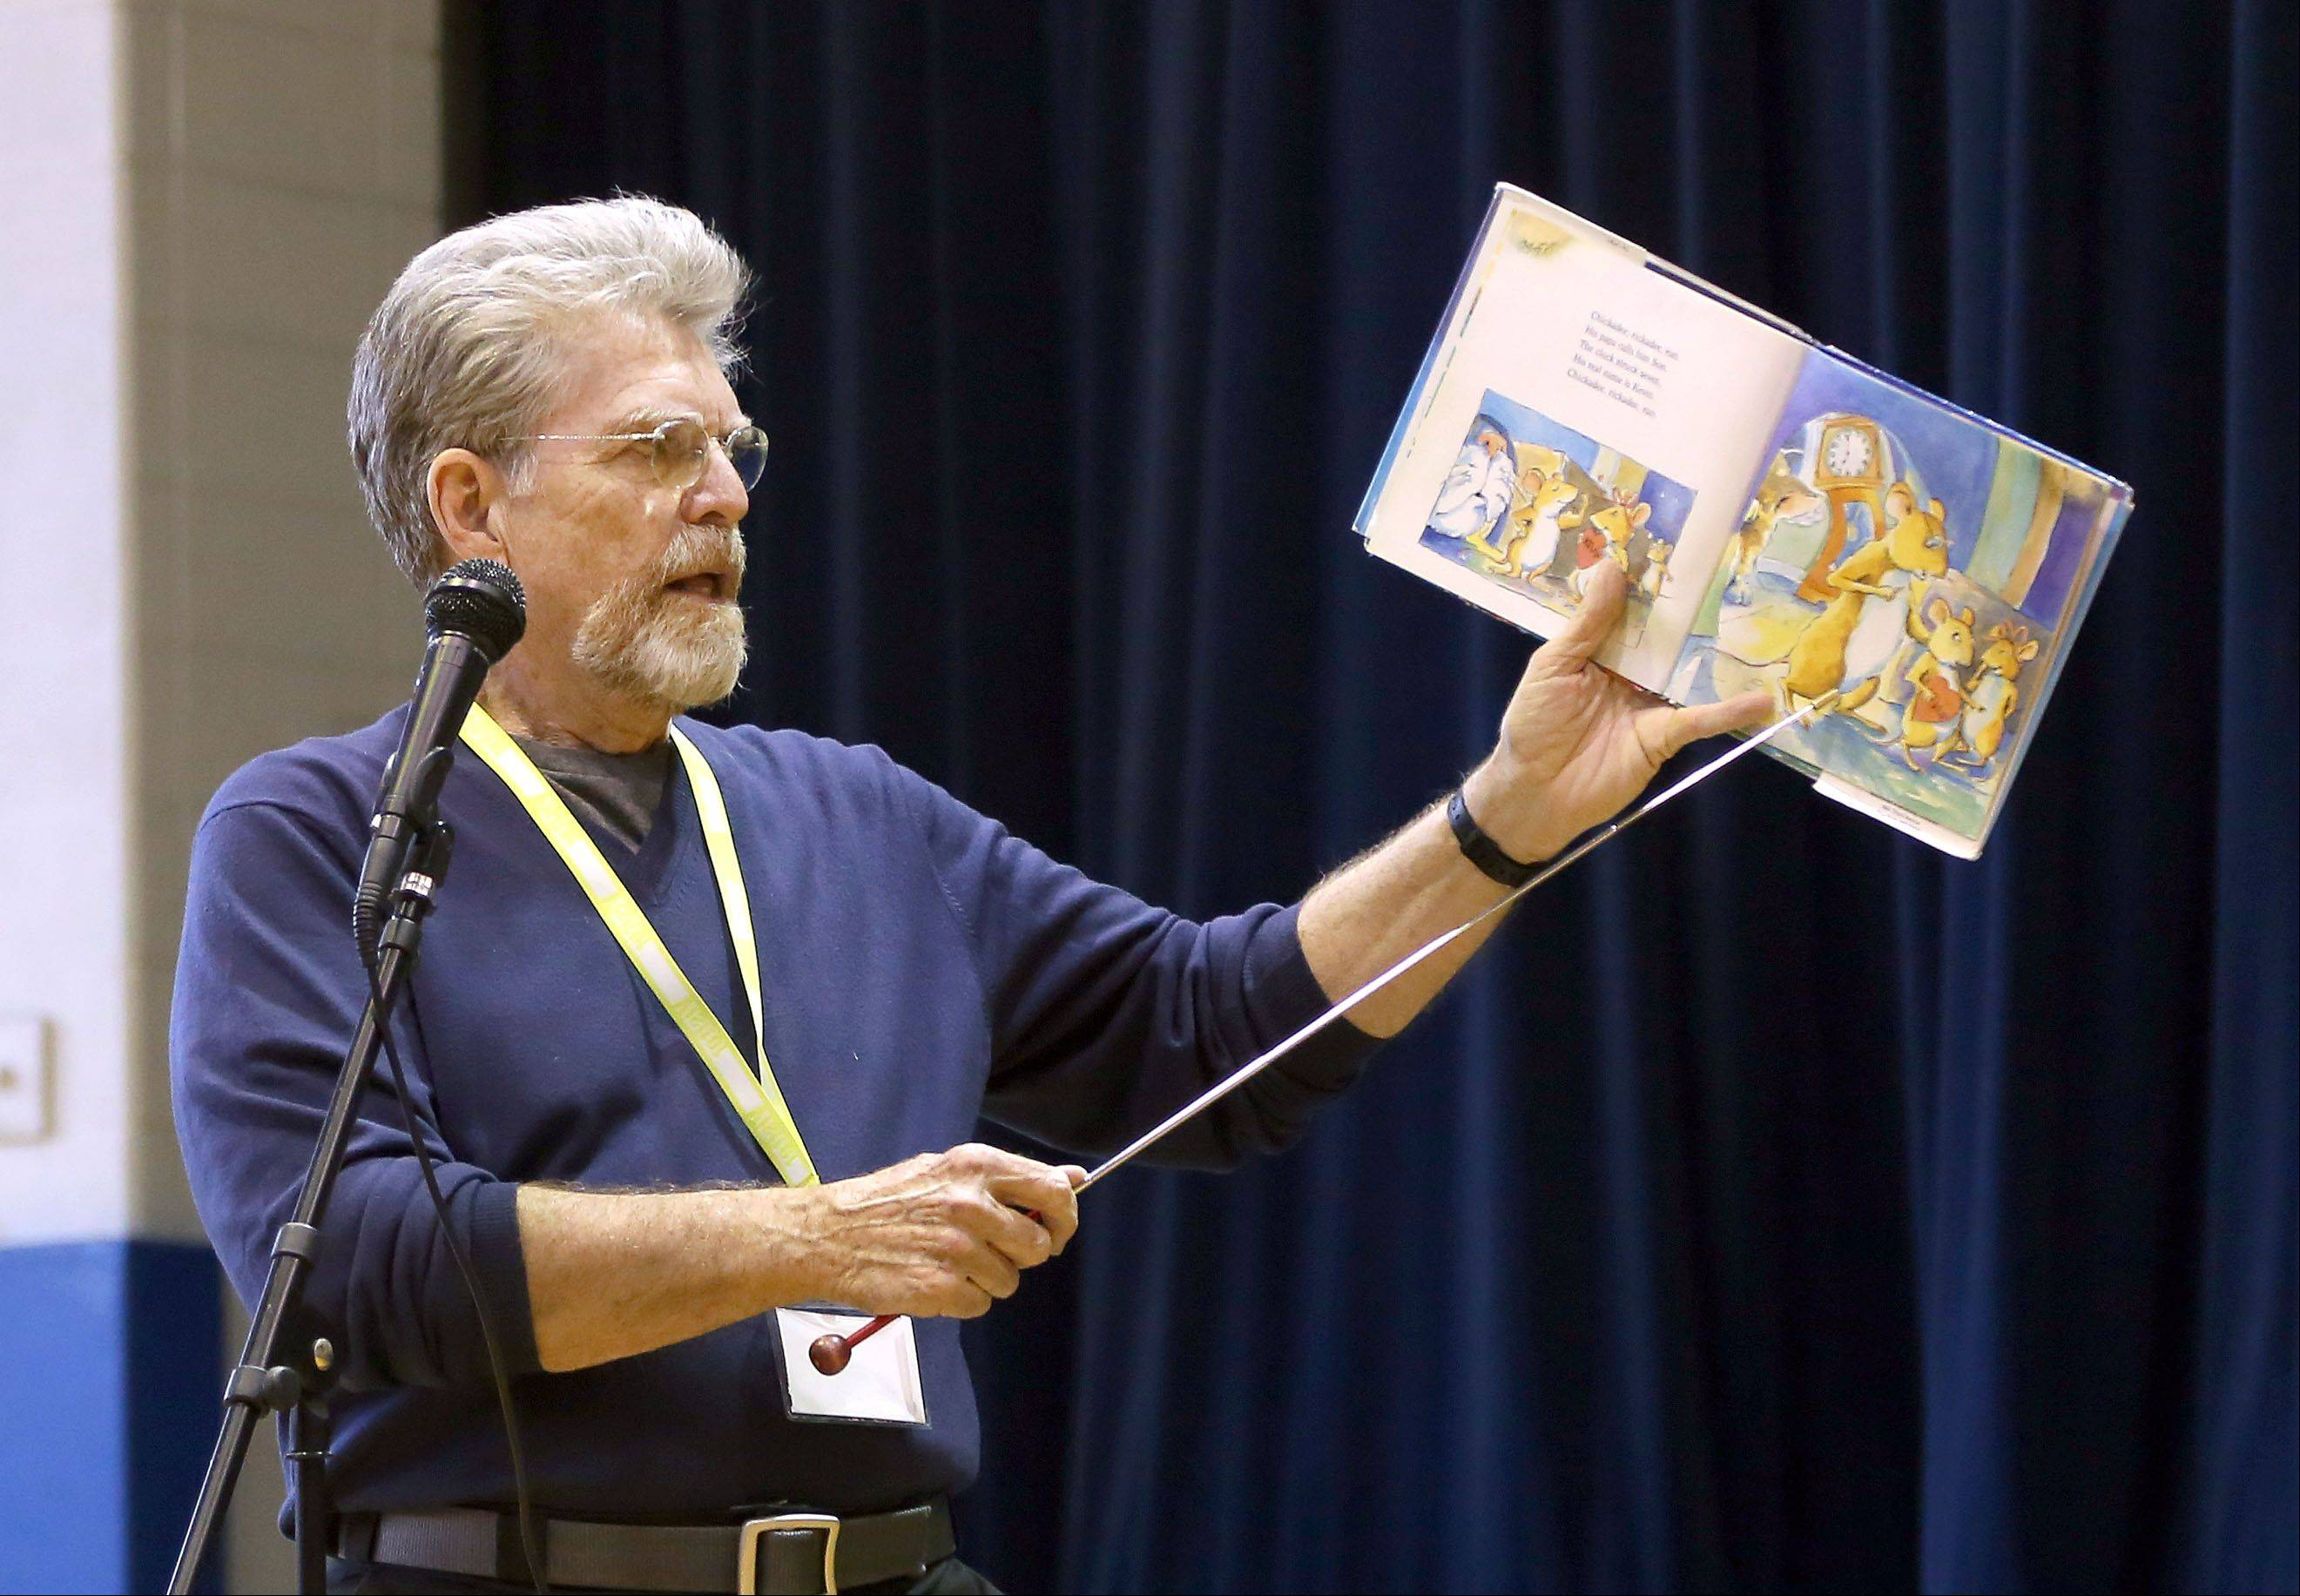 Author and former first grade teacher Jim Aylesworth reads one of the 34 books he has written to students at May Whitney Elementary School in Lake Zurich on Thursday.